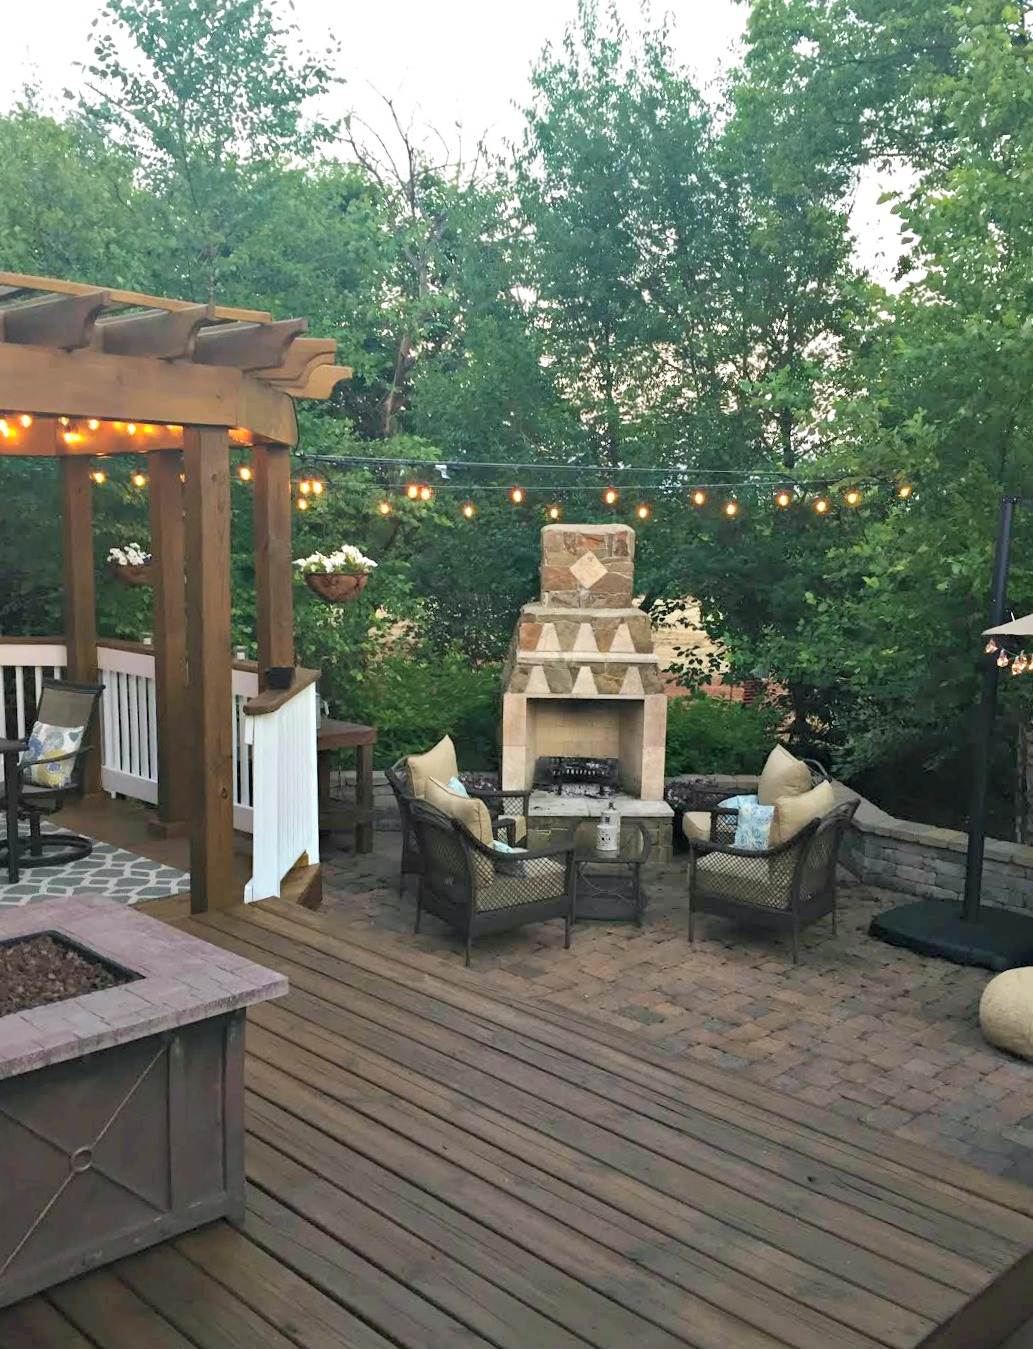 How to hang outdoor string lights from Thrifty Decor Chick on Backyard String Light Designs id=67644